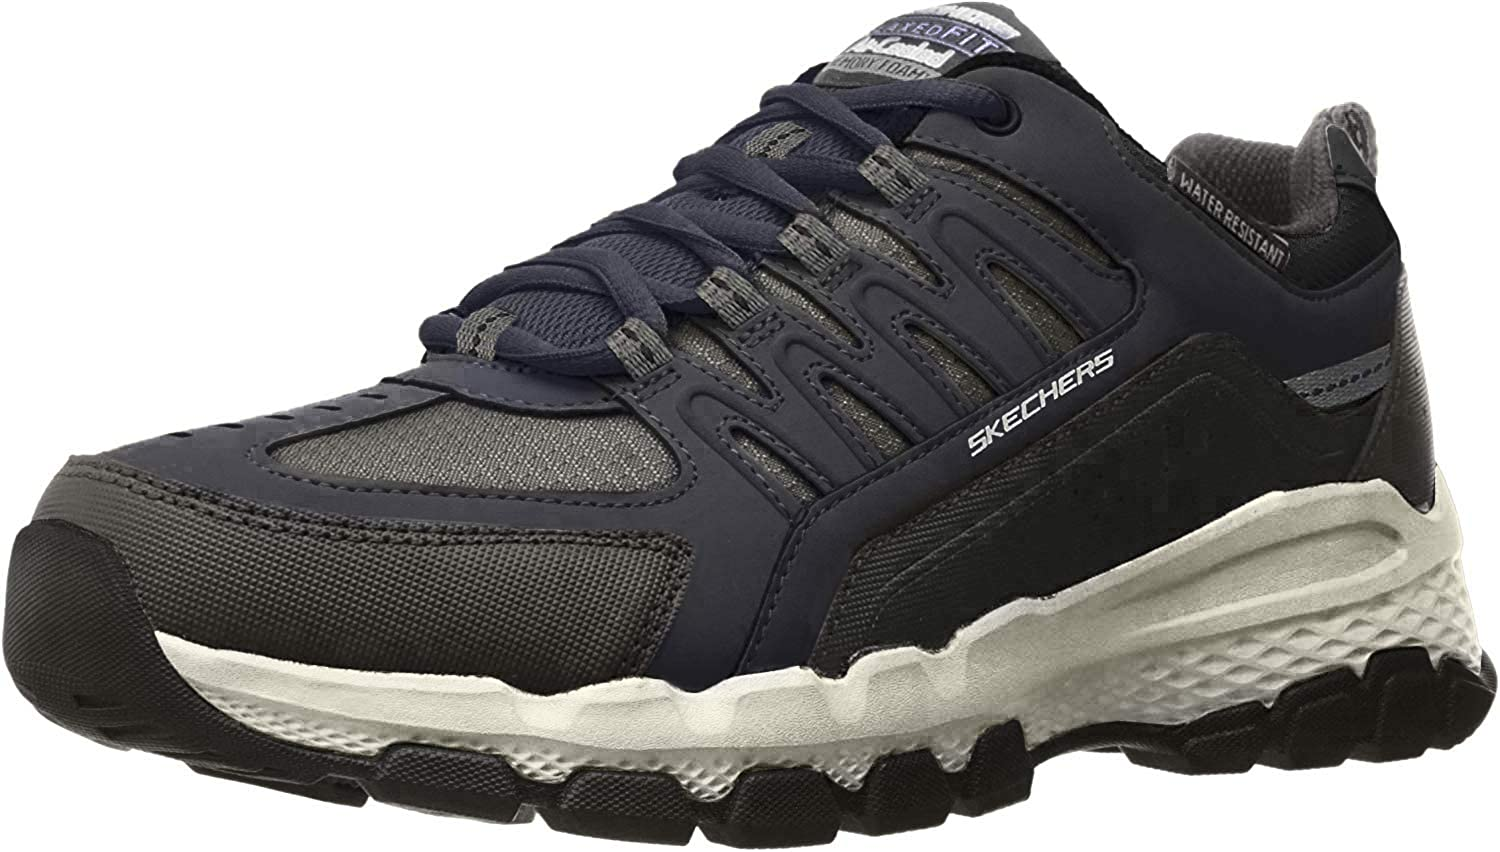 Skechers Outland 2.0 Walking Shoe